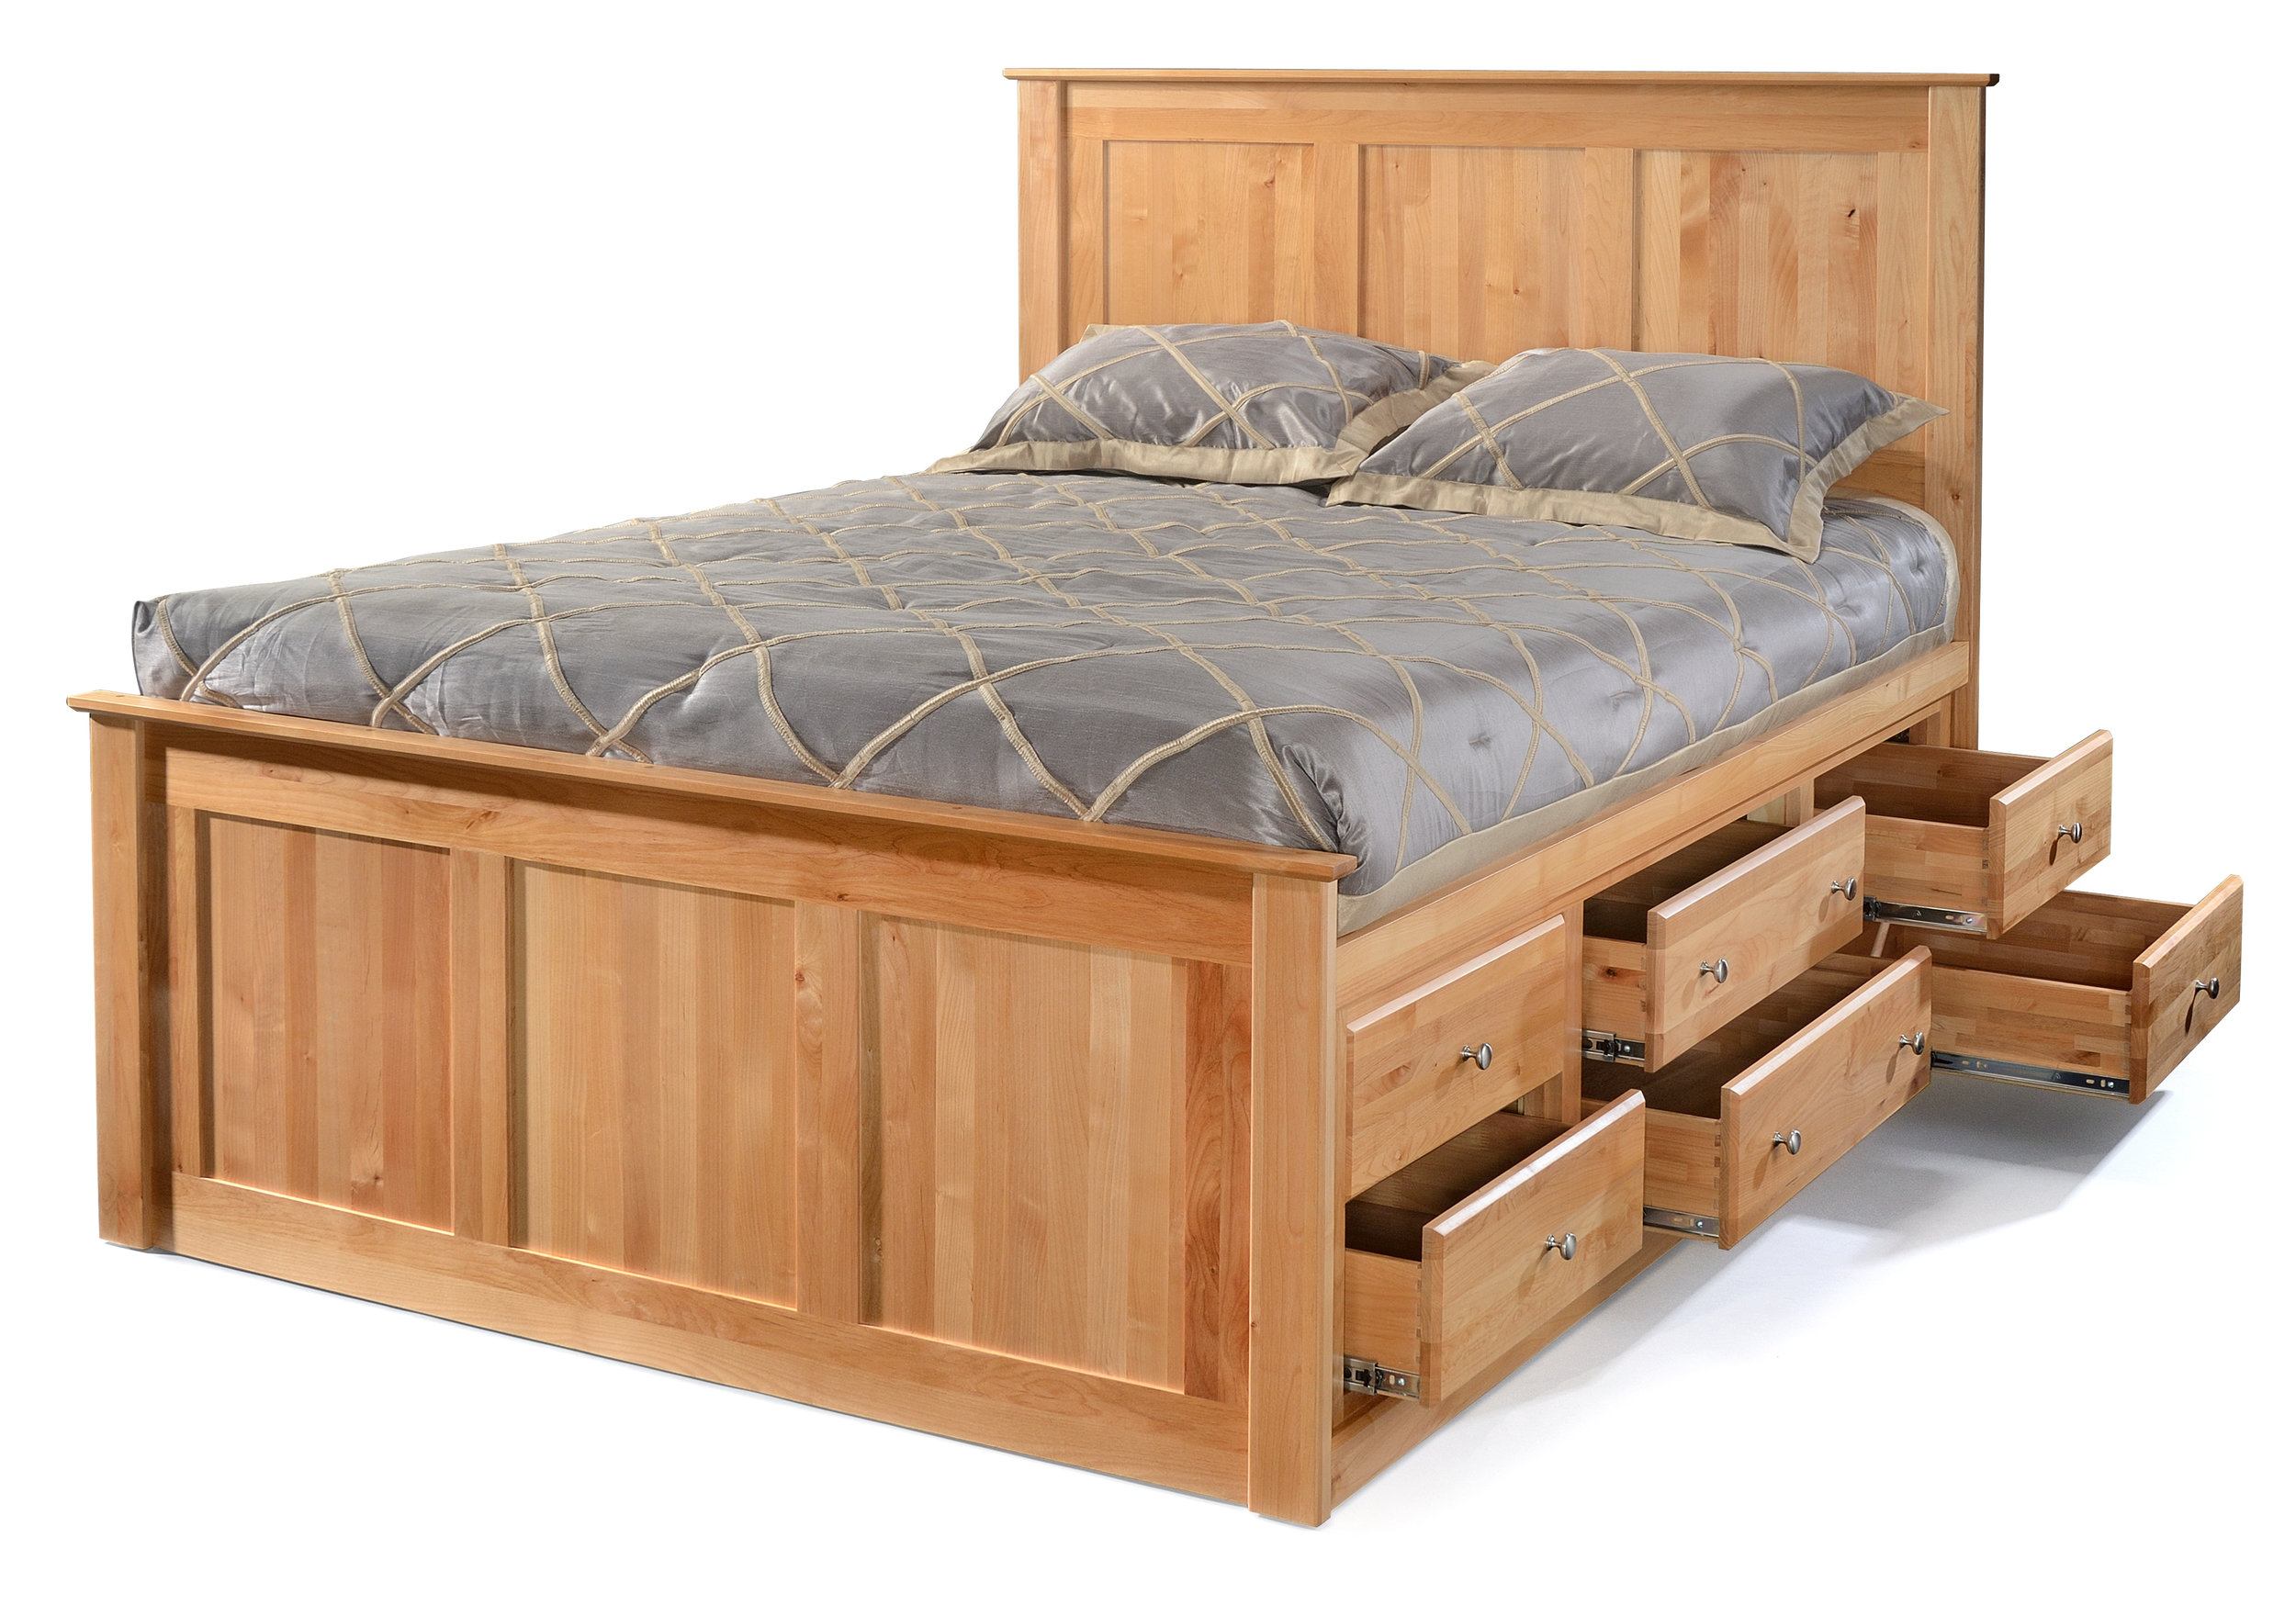 Alder Beds - Archbold - Tall storage bed 6 drawers - Finished.jpg